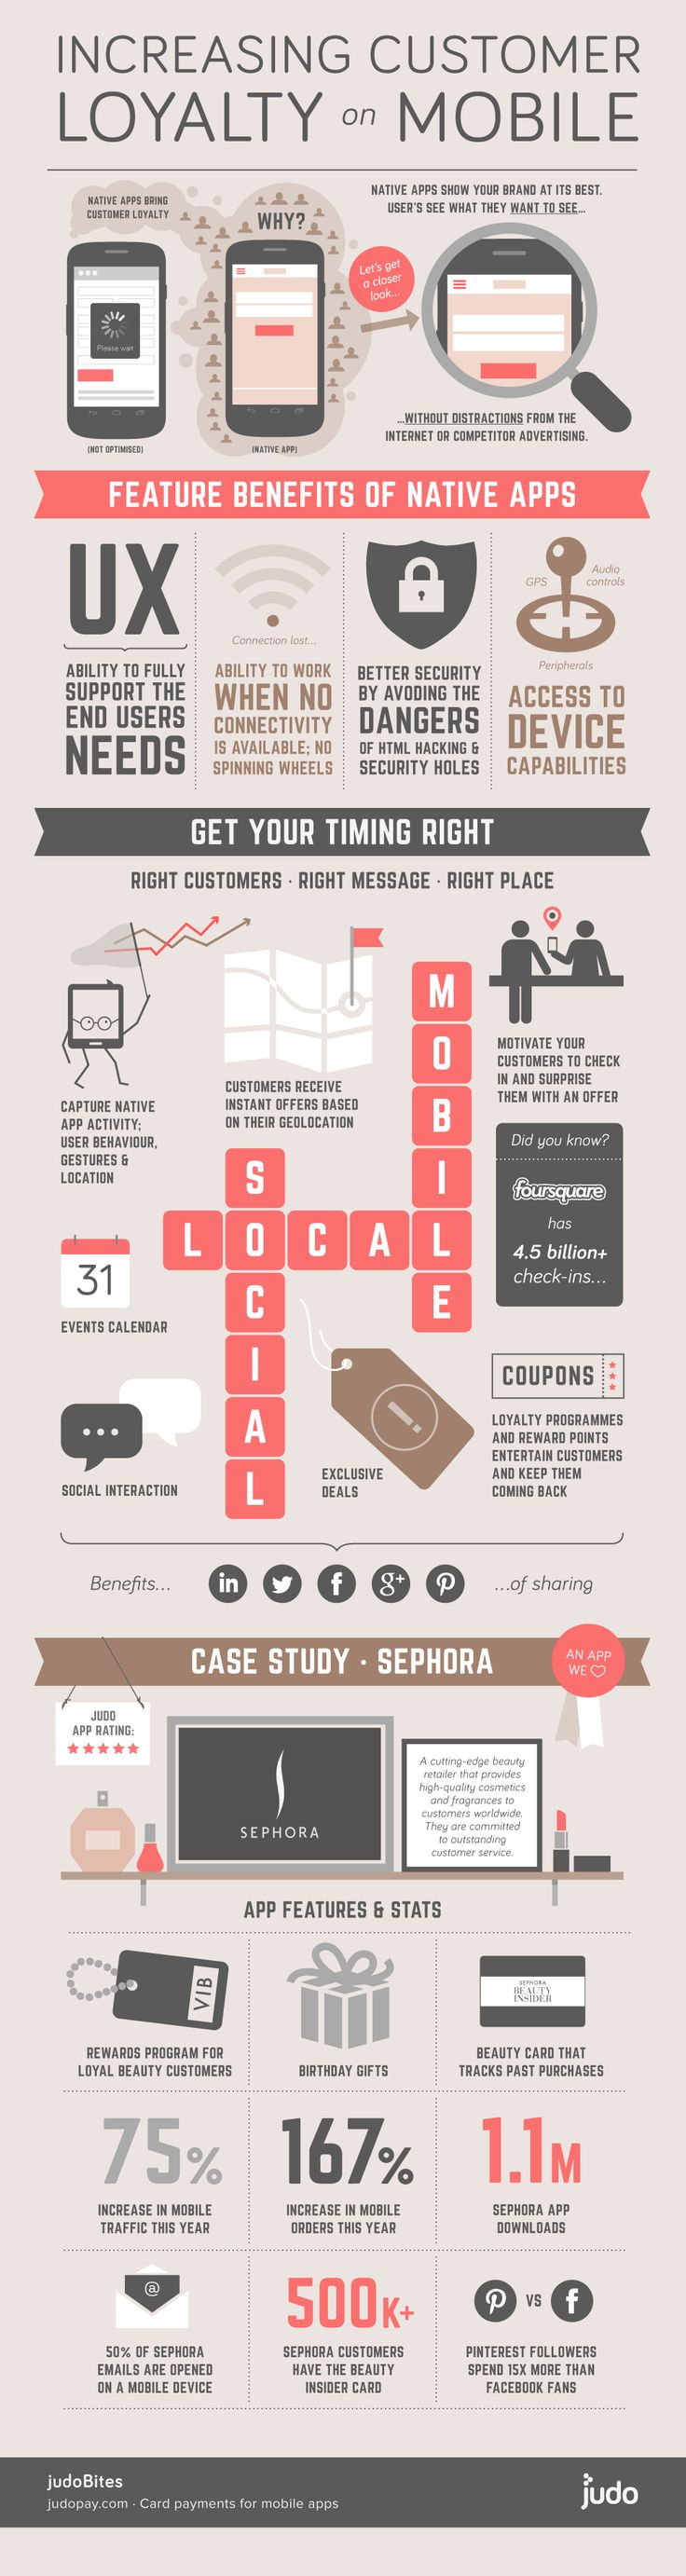 51 best Loyalty images on Pinterest | Loyalty, App and Interface ...